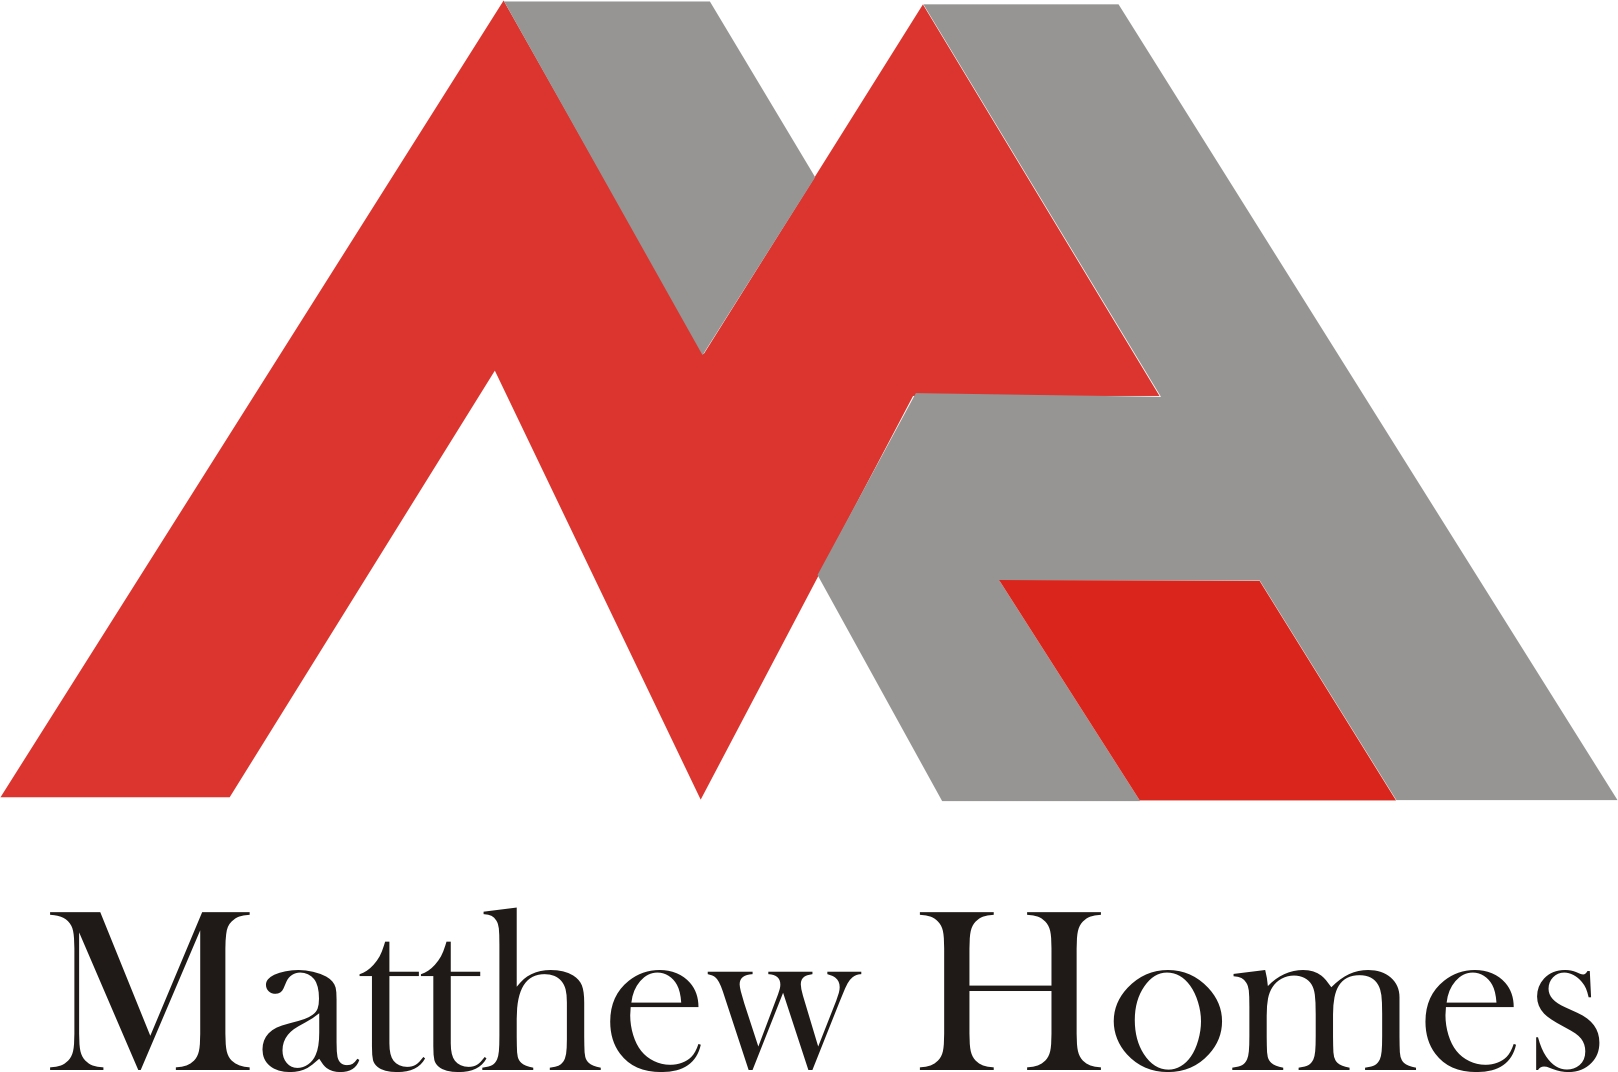 A development by Matthew Homes Limited